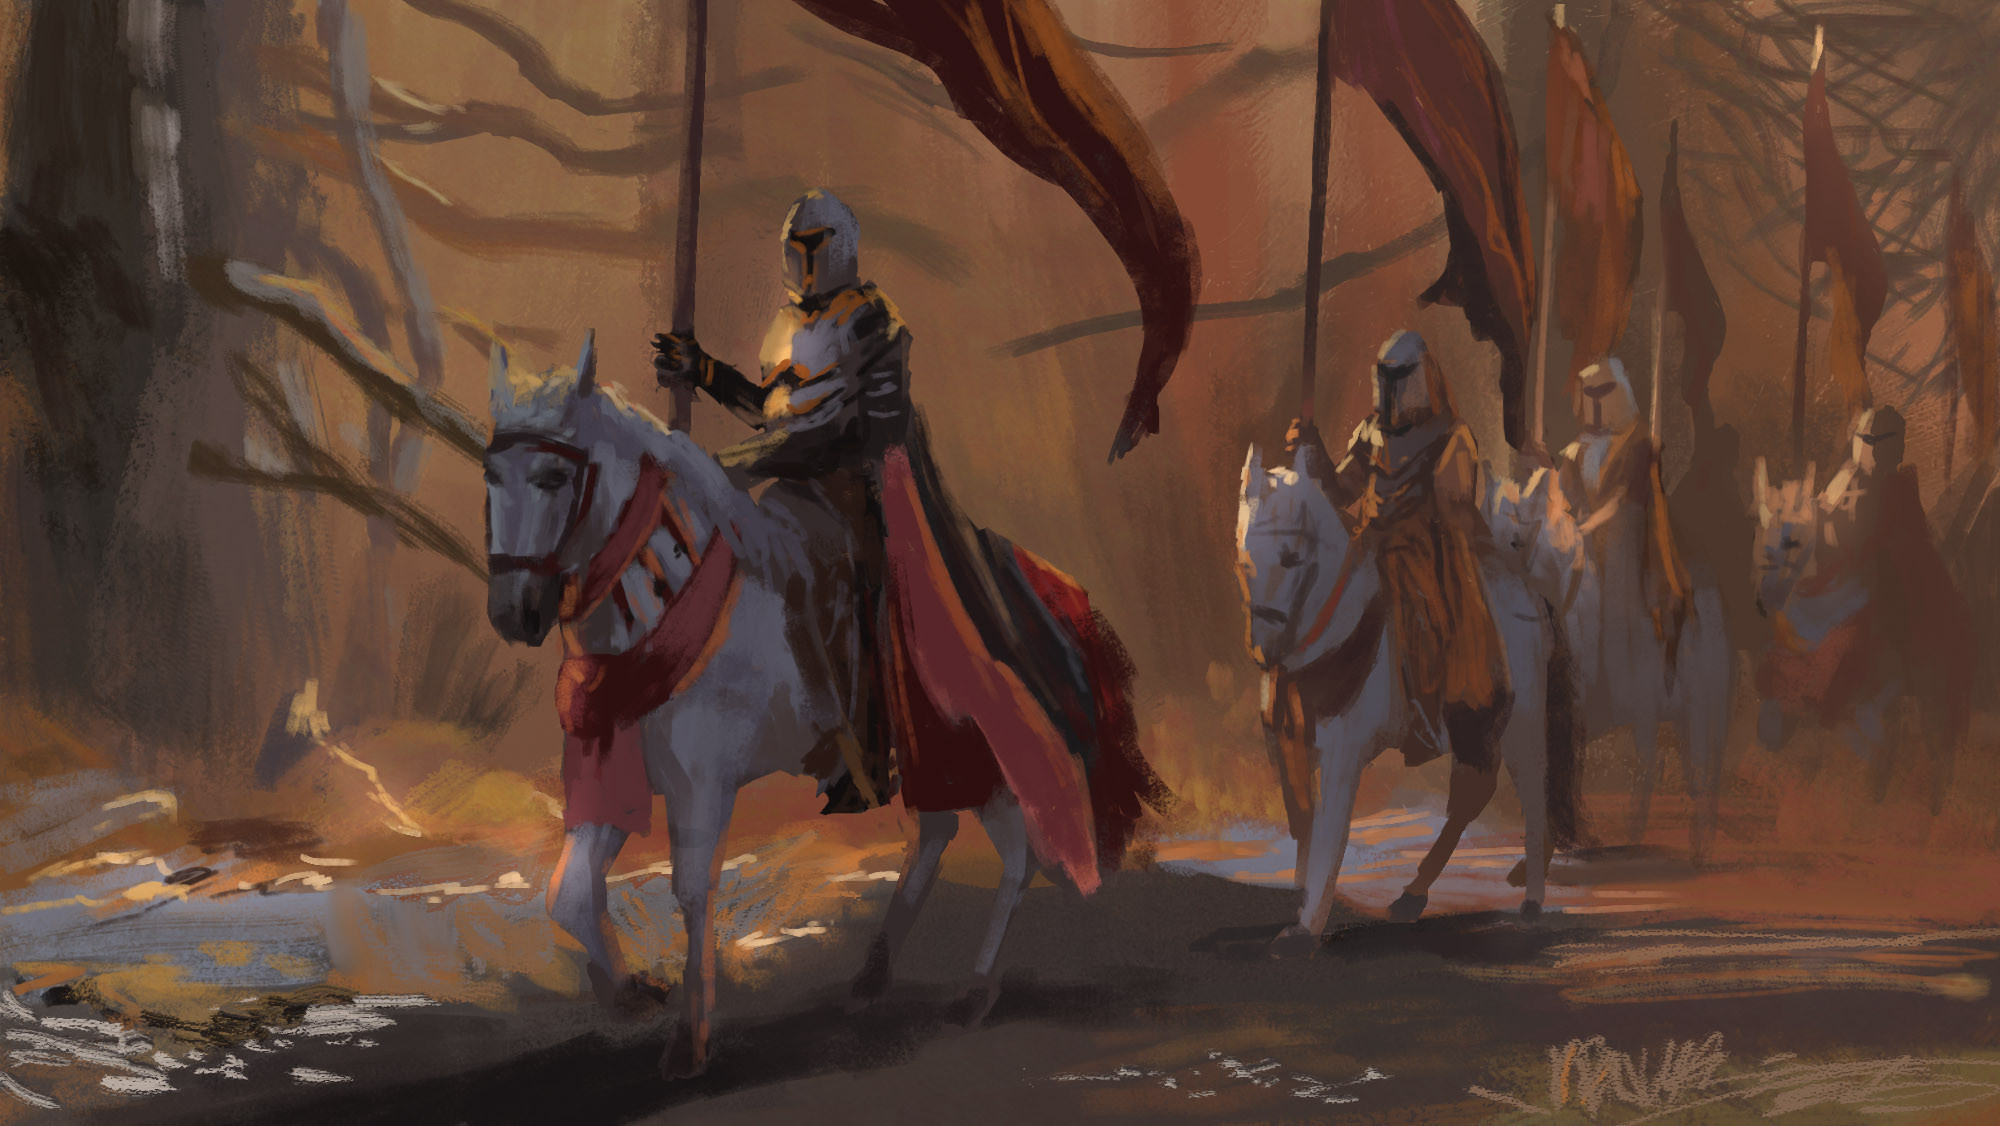 Study: John Park Study 02 A quick study of John Park's amazing painting with a column of knights riding through a forest with quite magical light mood. Check it out when you got the chance, it is so full of layers and layers!